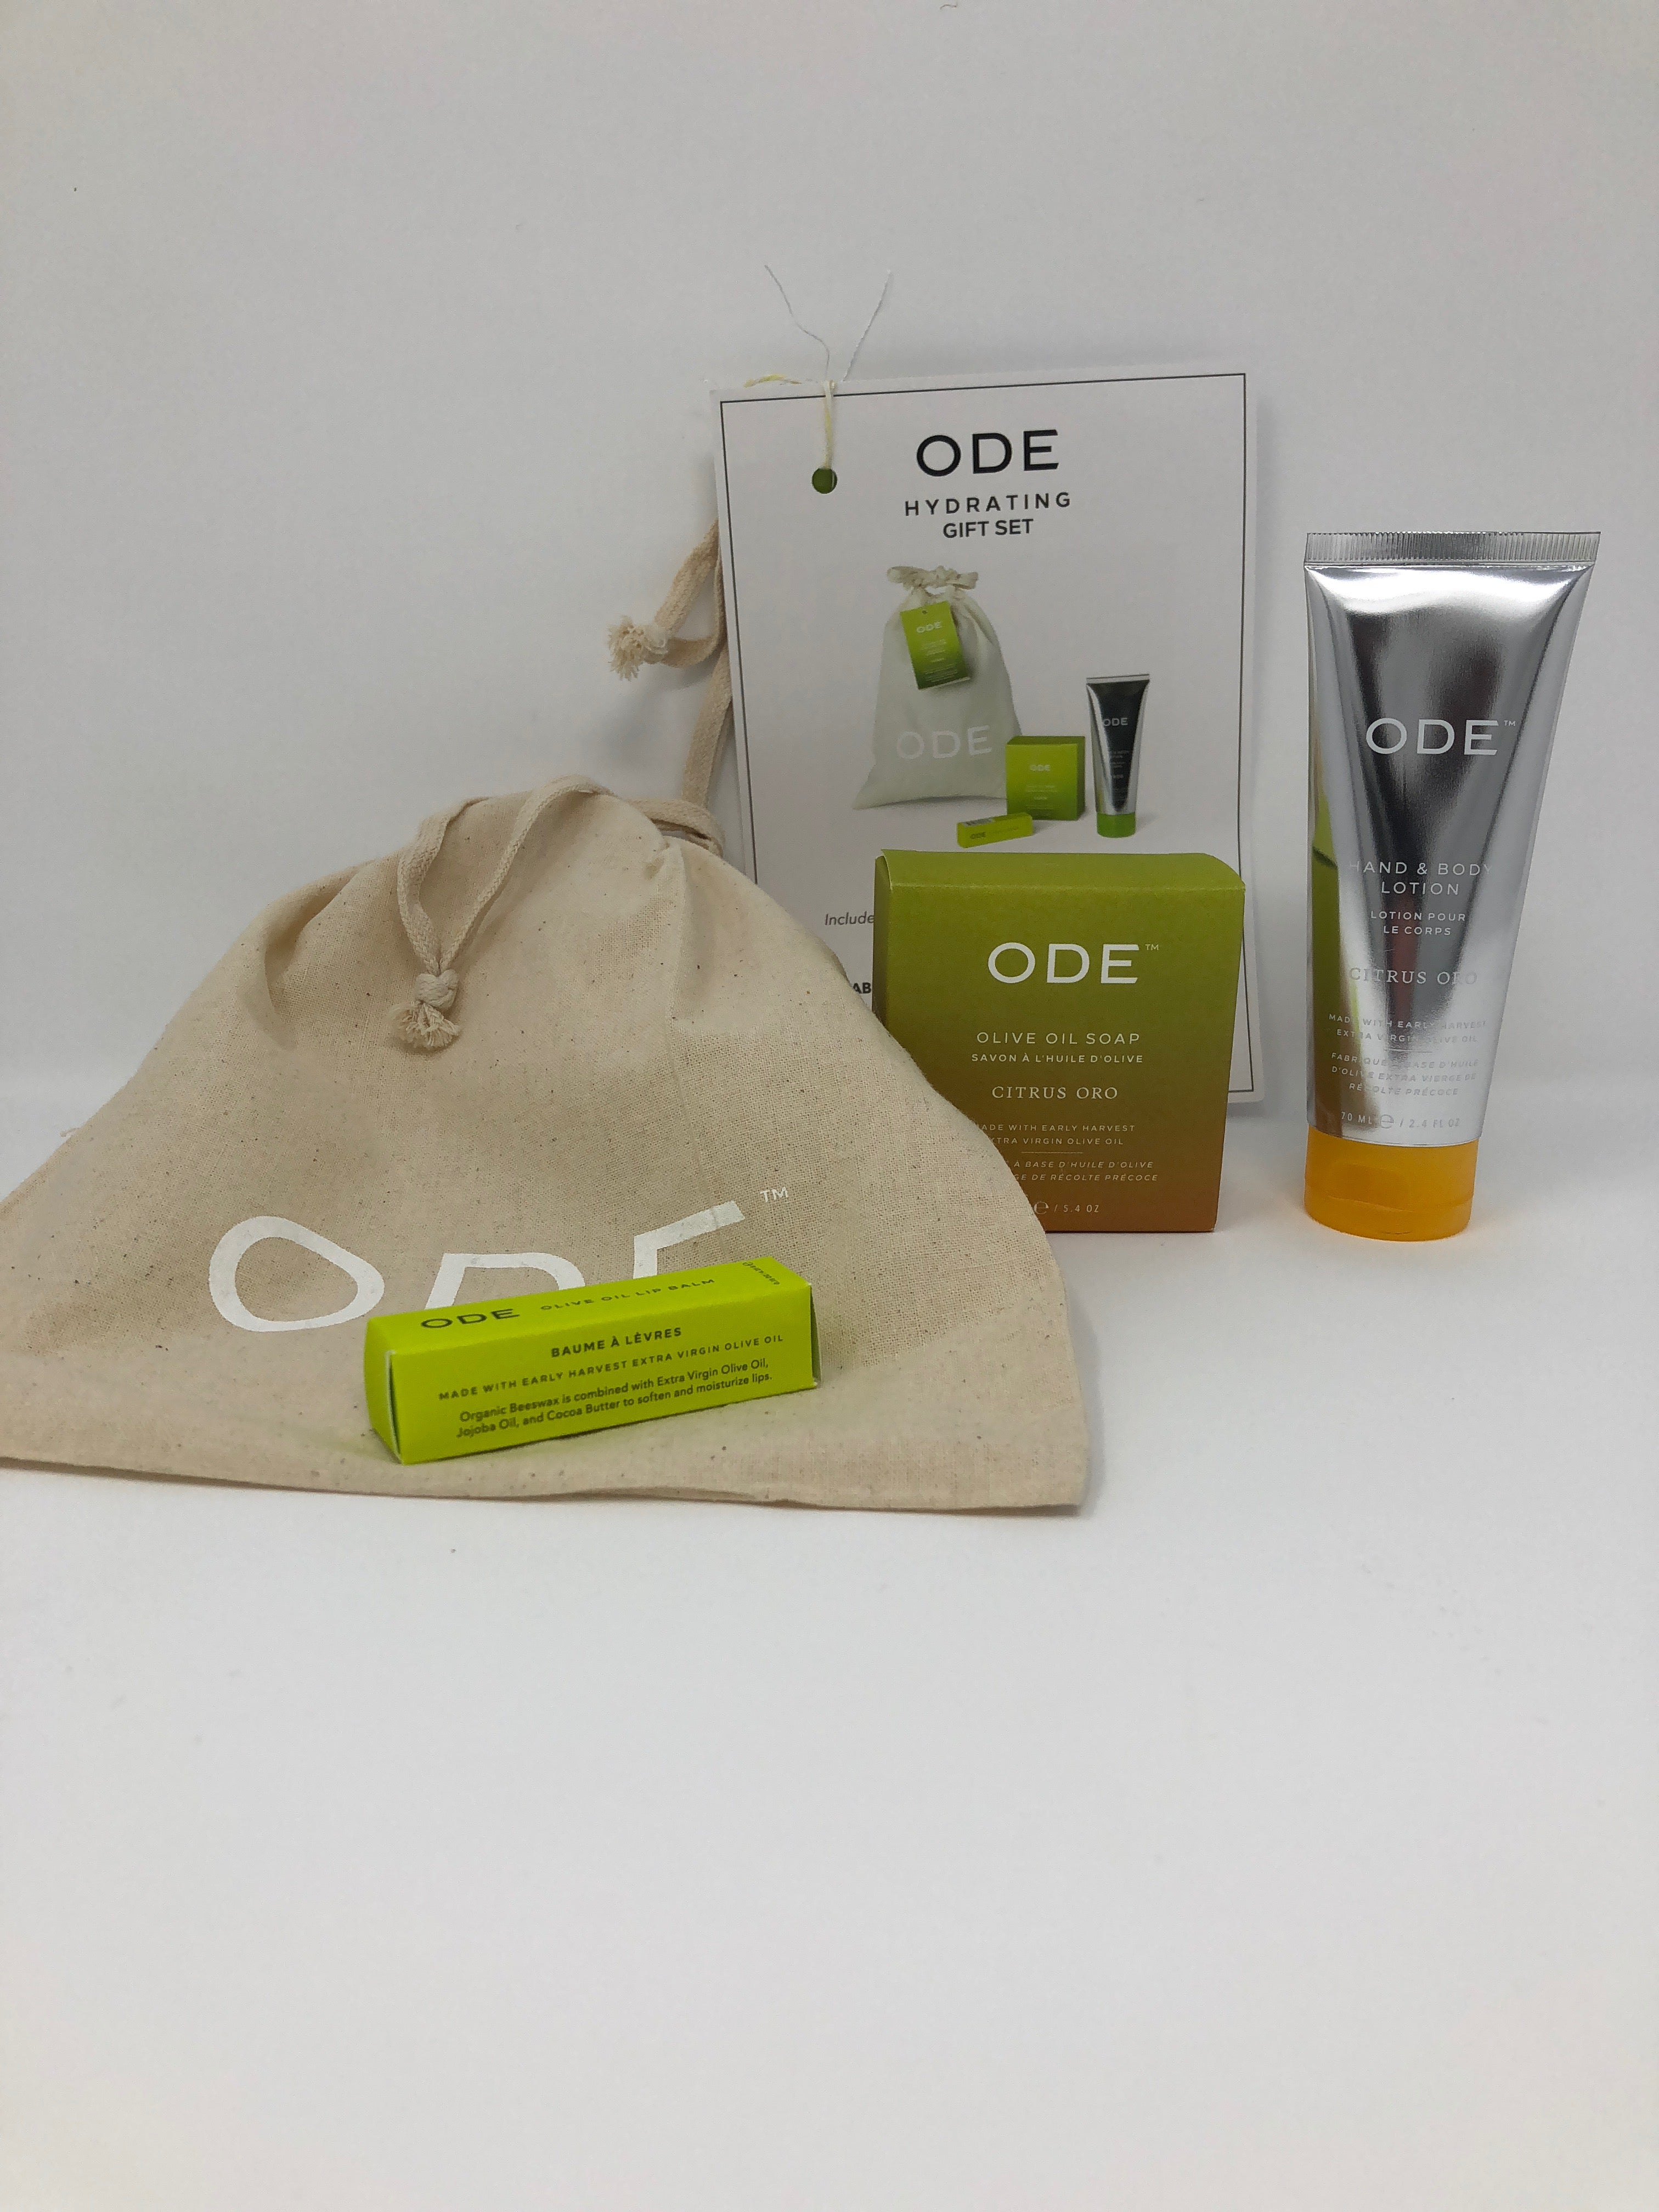 ODE Hydrating Gift Set in Bag